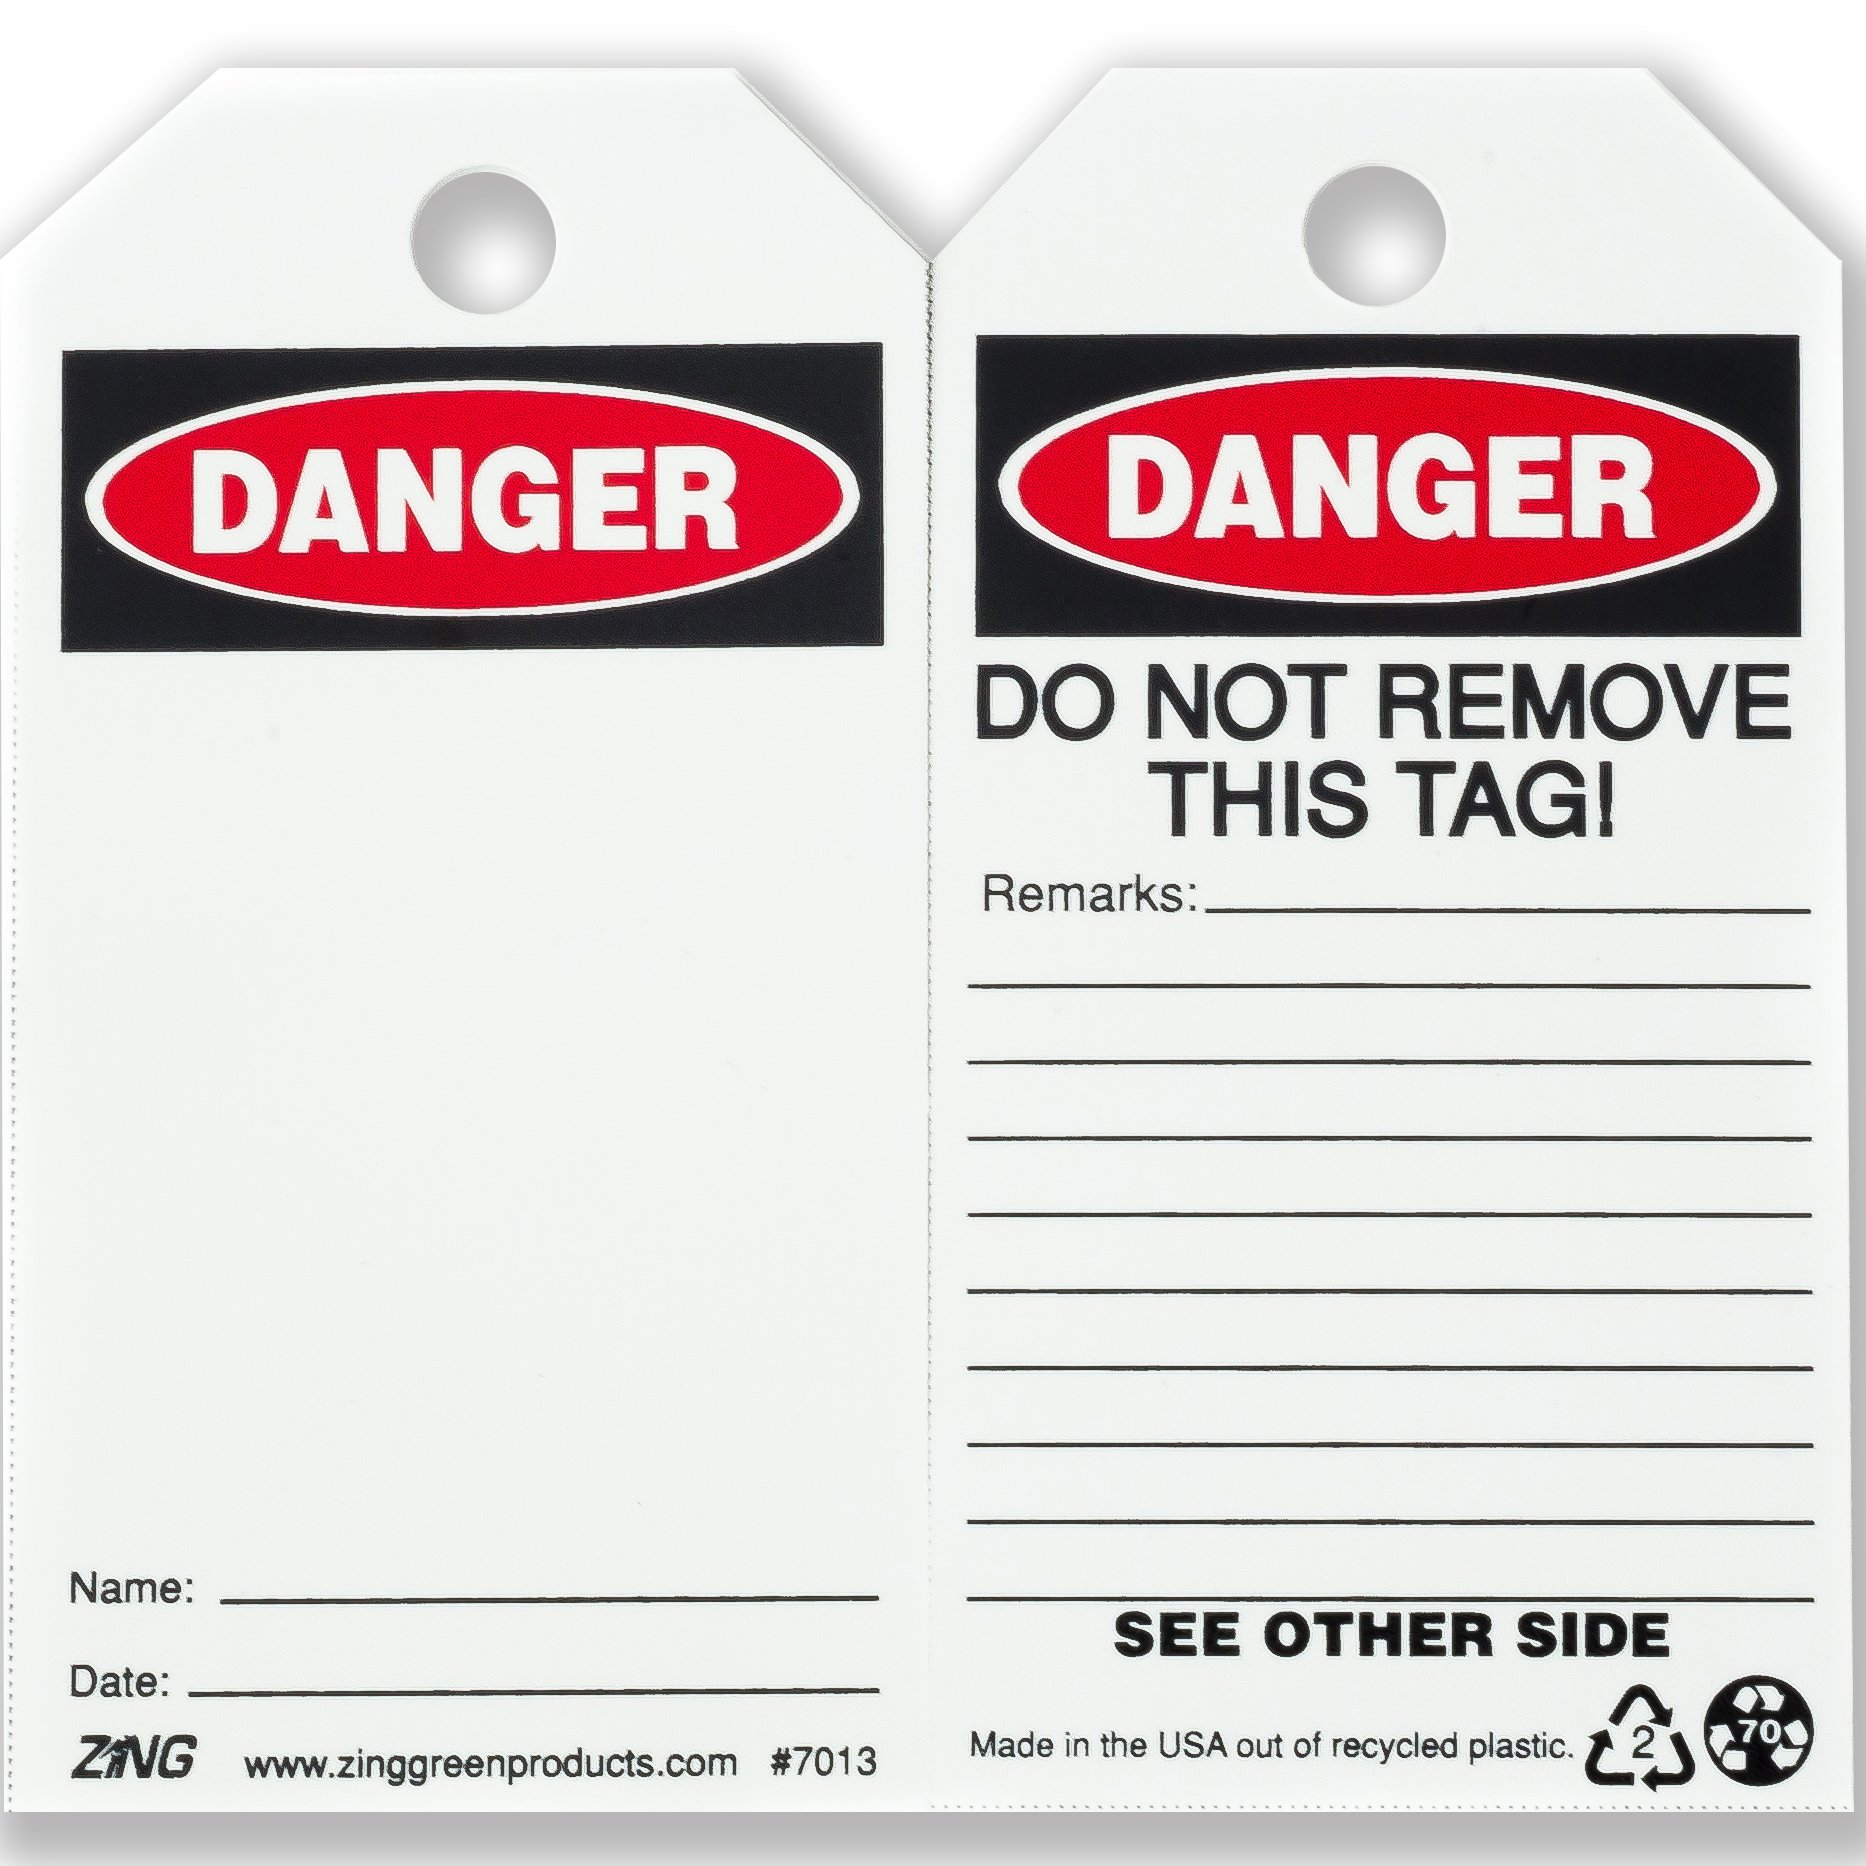 ZING 7013 Eco Safety Tag, DANGER, Blank, 5.75Hx3W, 10 Pack by Zing Green Products